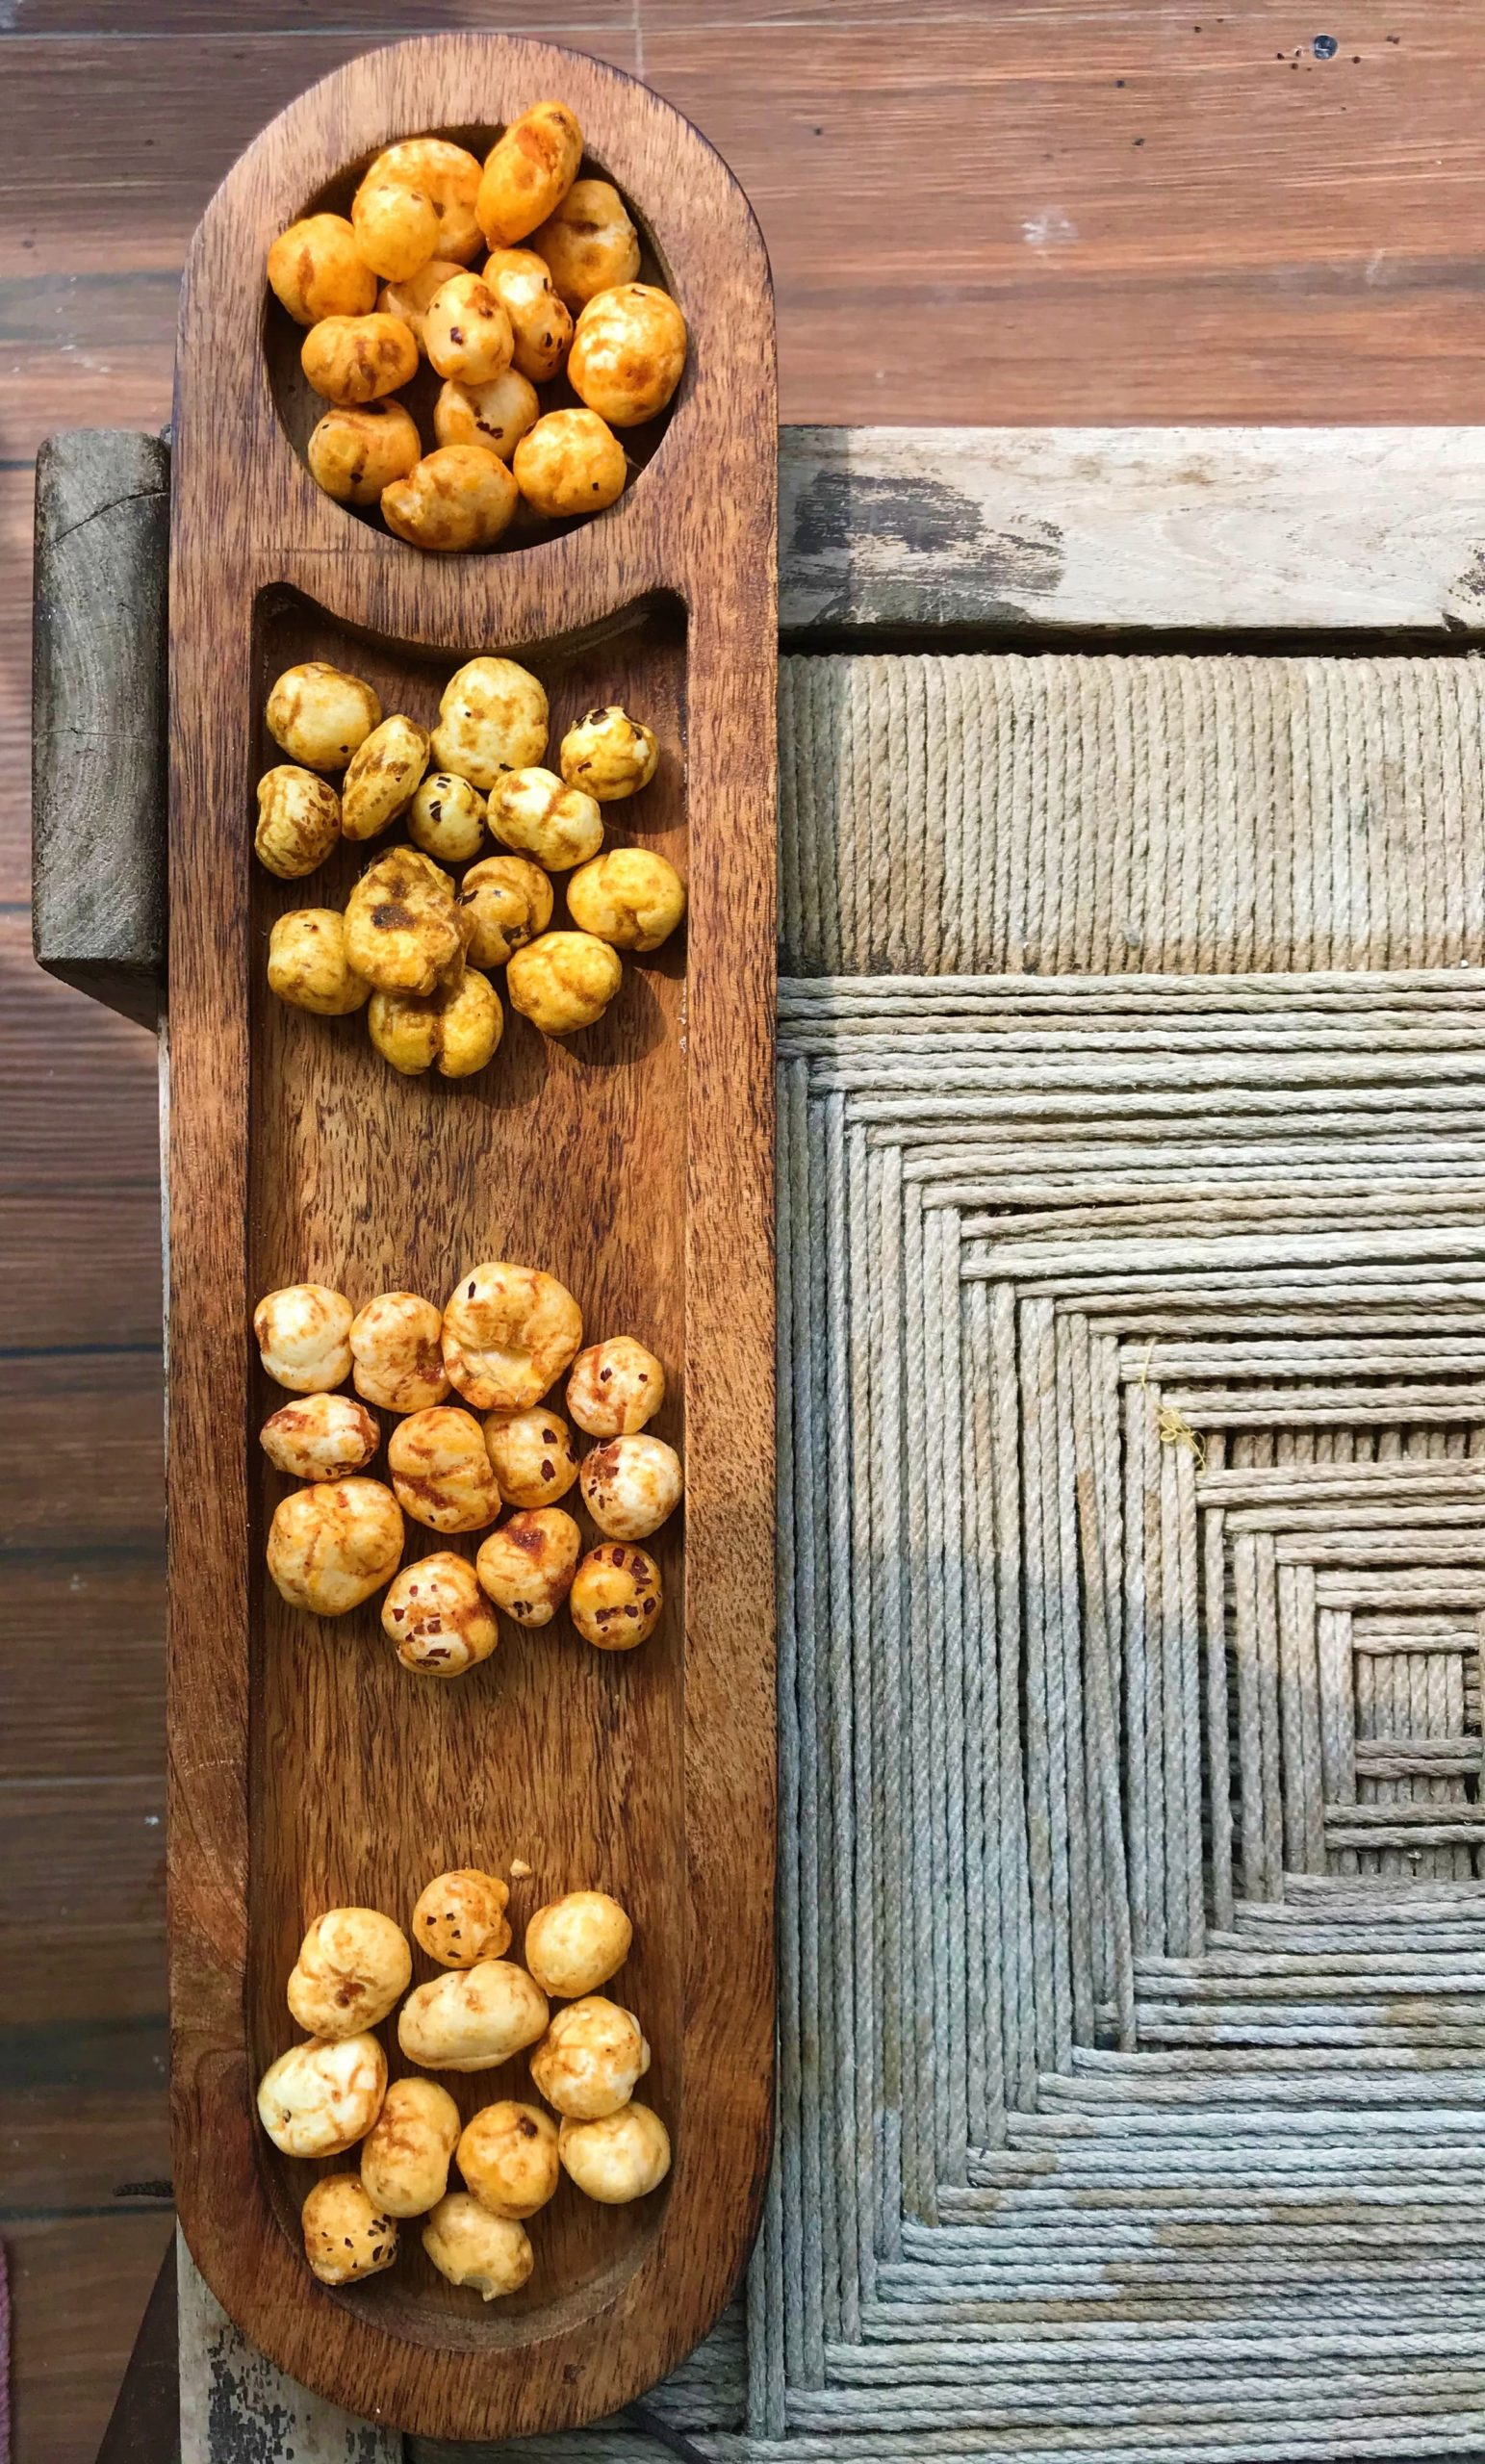 Benefits Of Fox Nuts (Makhana): Here's How You Can Up Your Health Quotient With Makhanas